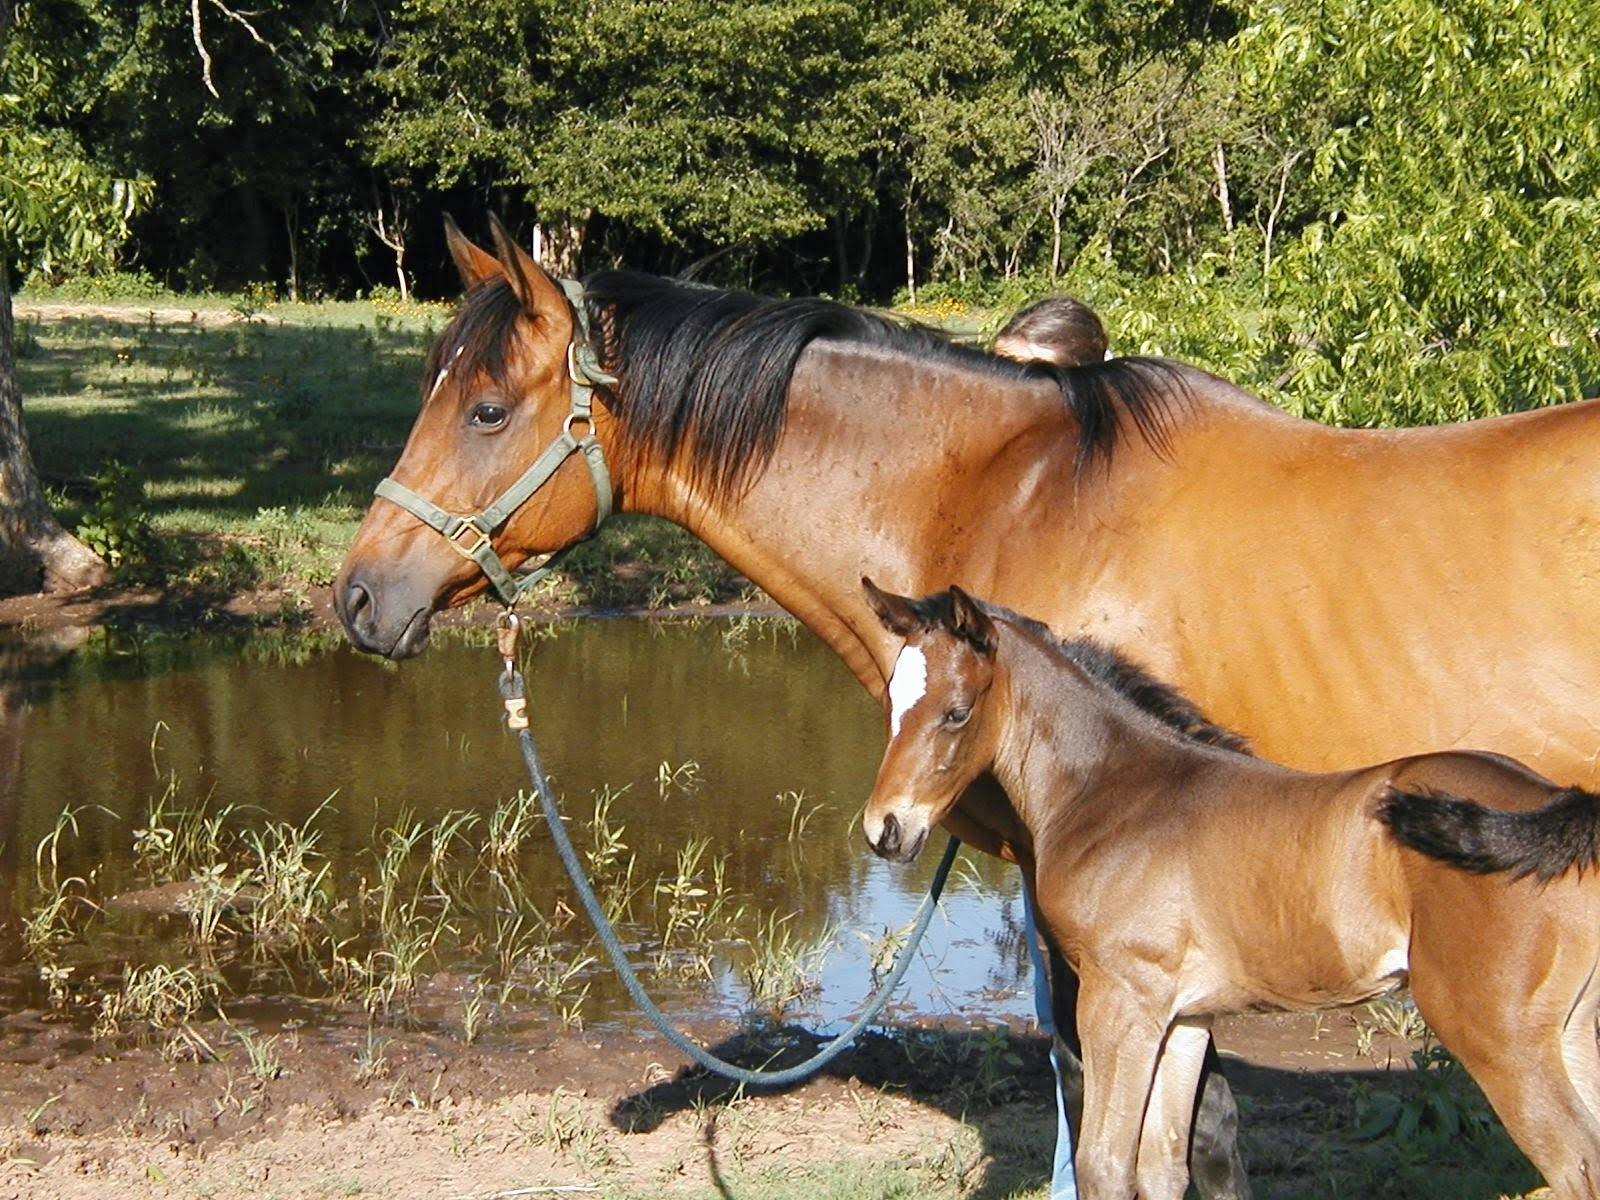 Solar and her foal; a filly 2001